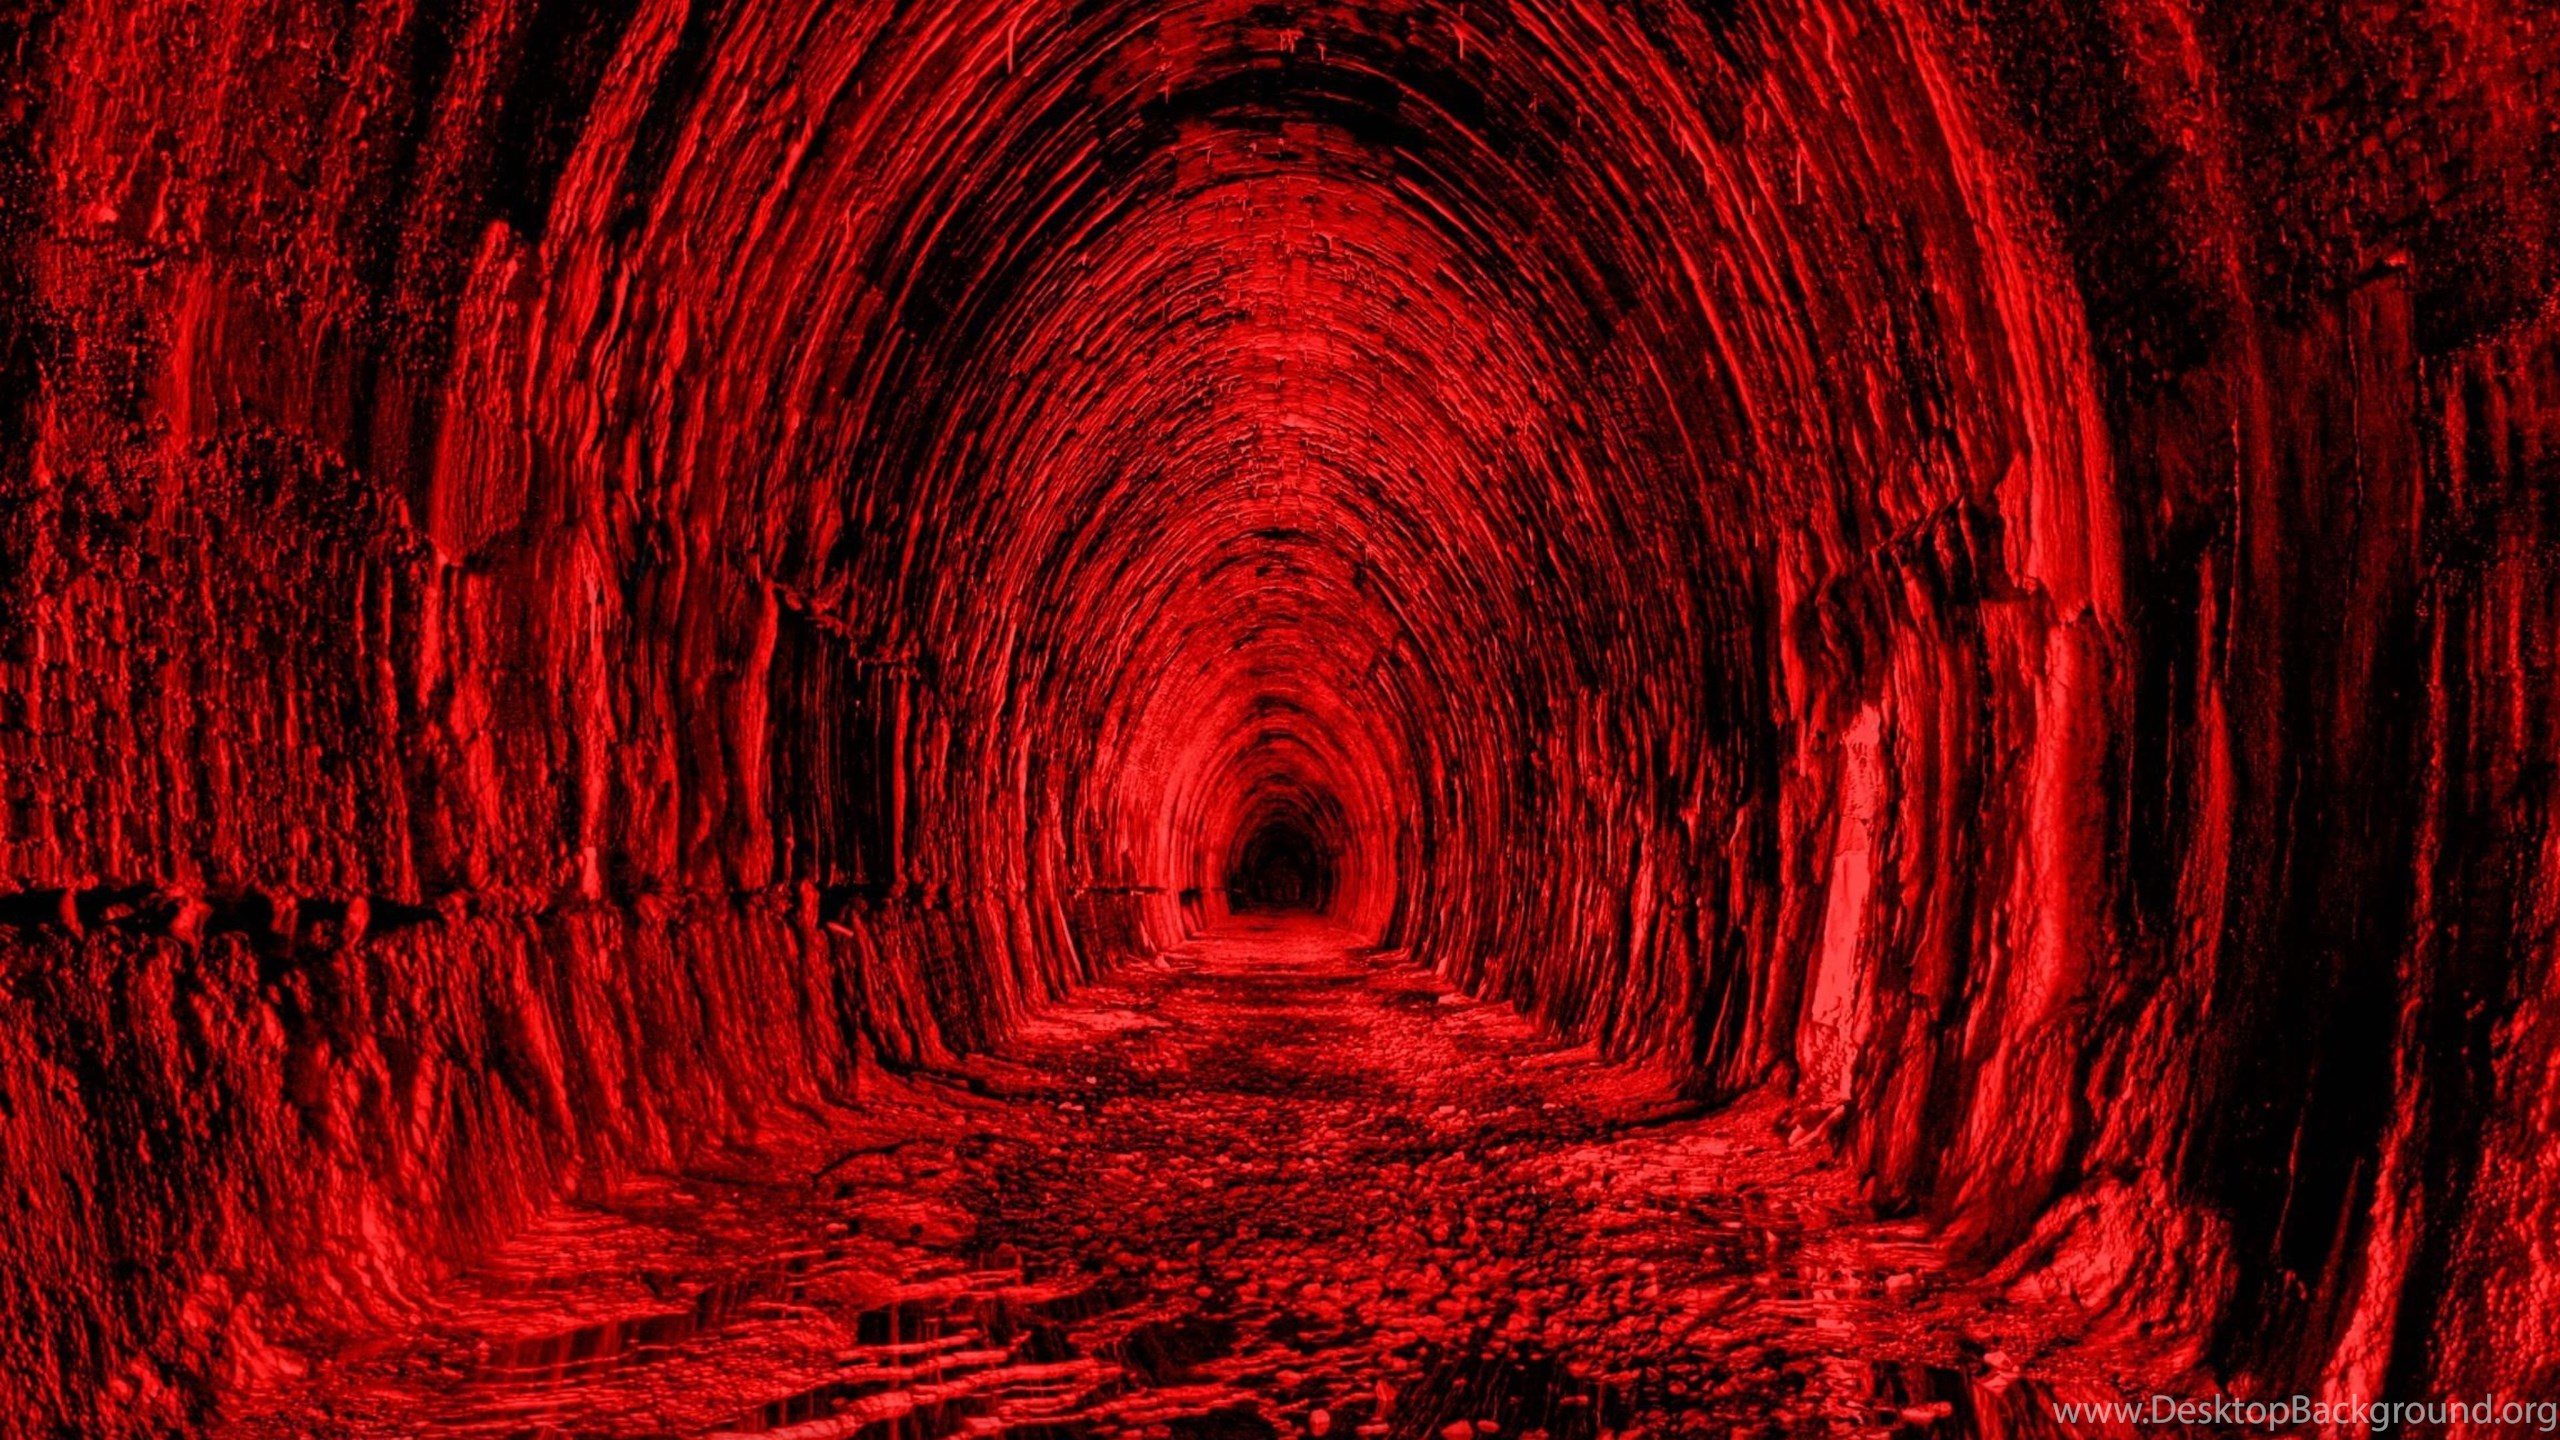 Download Wallpapers 3840x2400 Tunnel Red Black Light Ultra Hd 4k